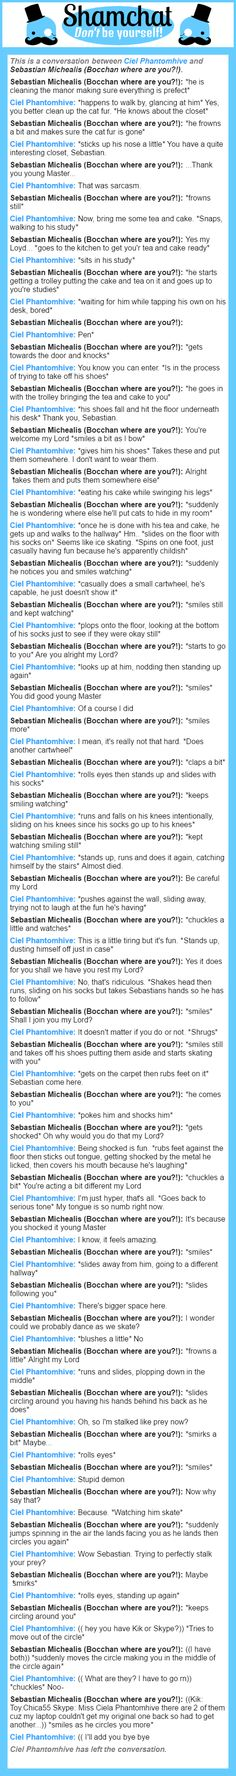 A conversation between Sebastian Michealis (Bocchan where are you?!) and Ciel Phantomhive